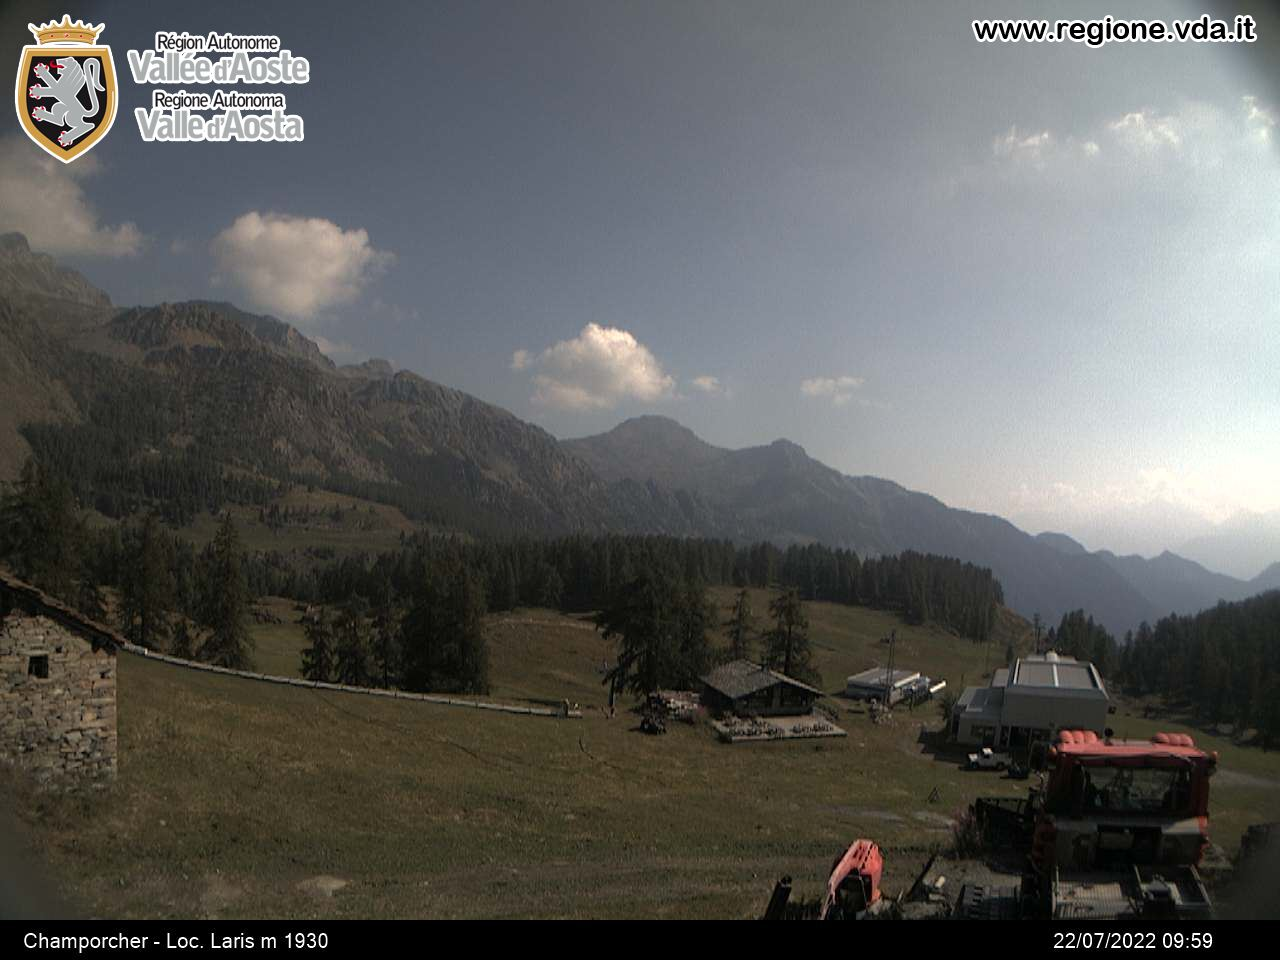 Web Cam Champorcher in Valle d'Aosta